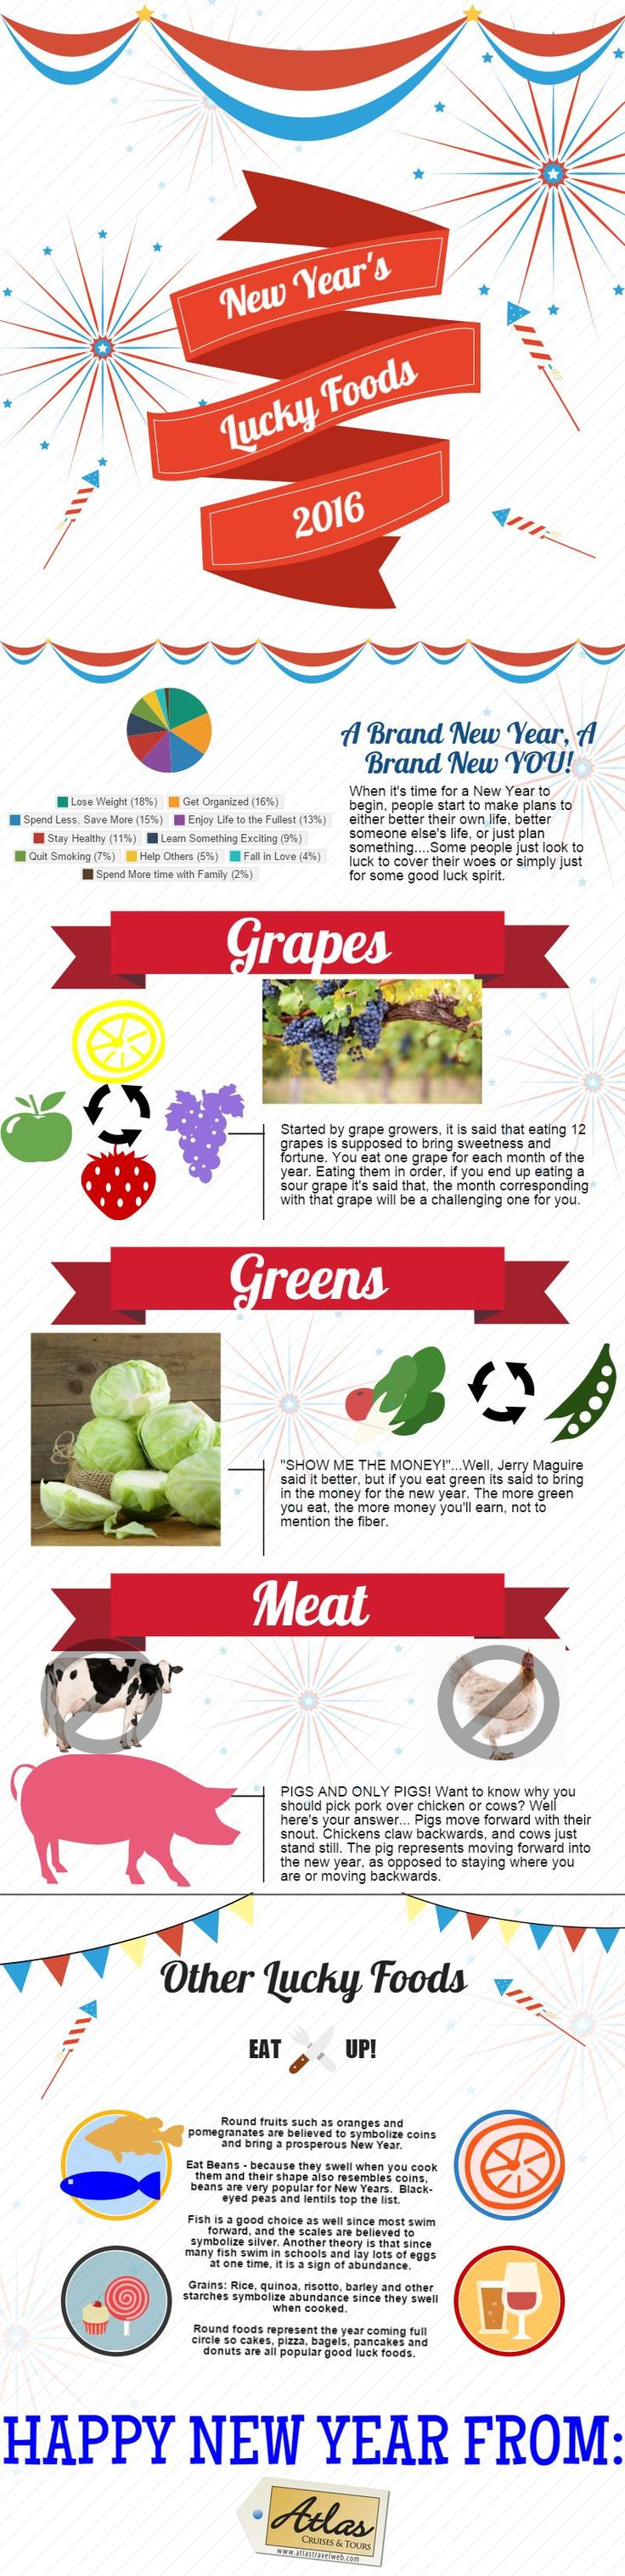 New Years Lucky foods 2017. Read about traditions from around the World and try these good luck foods for new years to start 2017 on the right note.